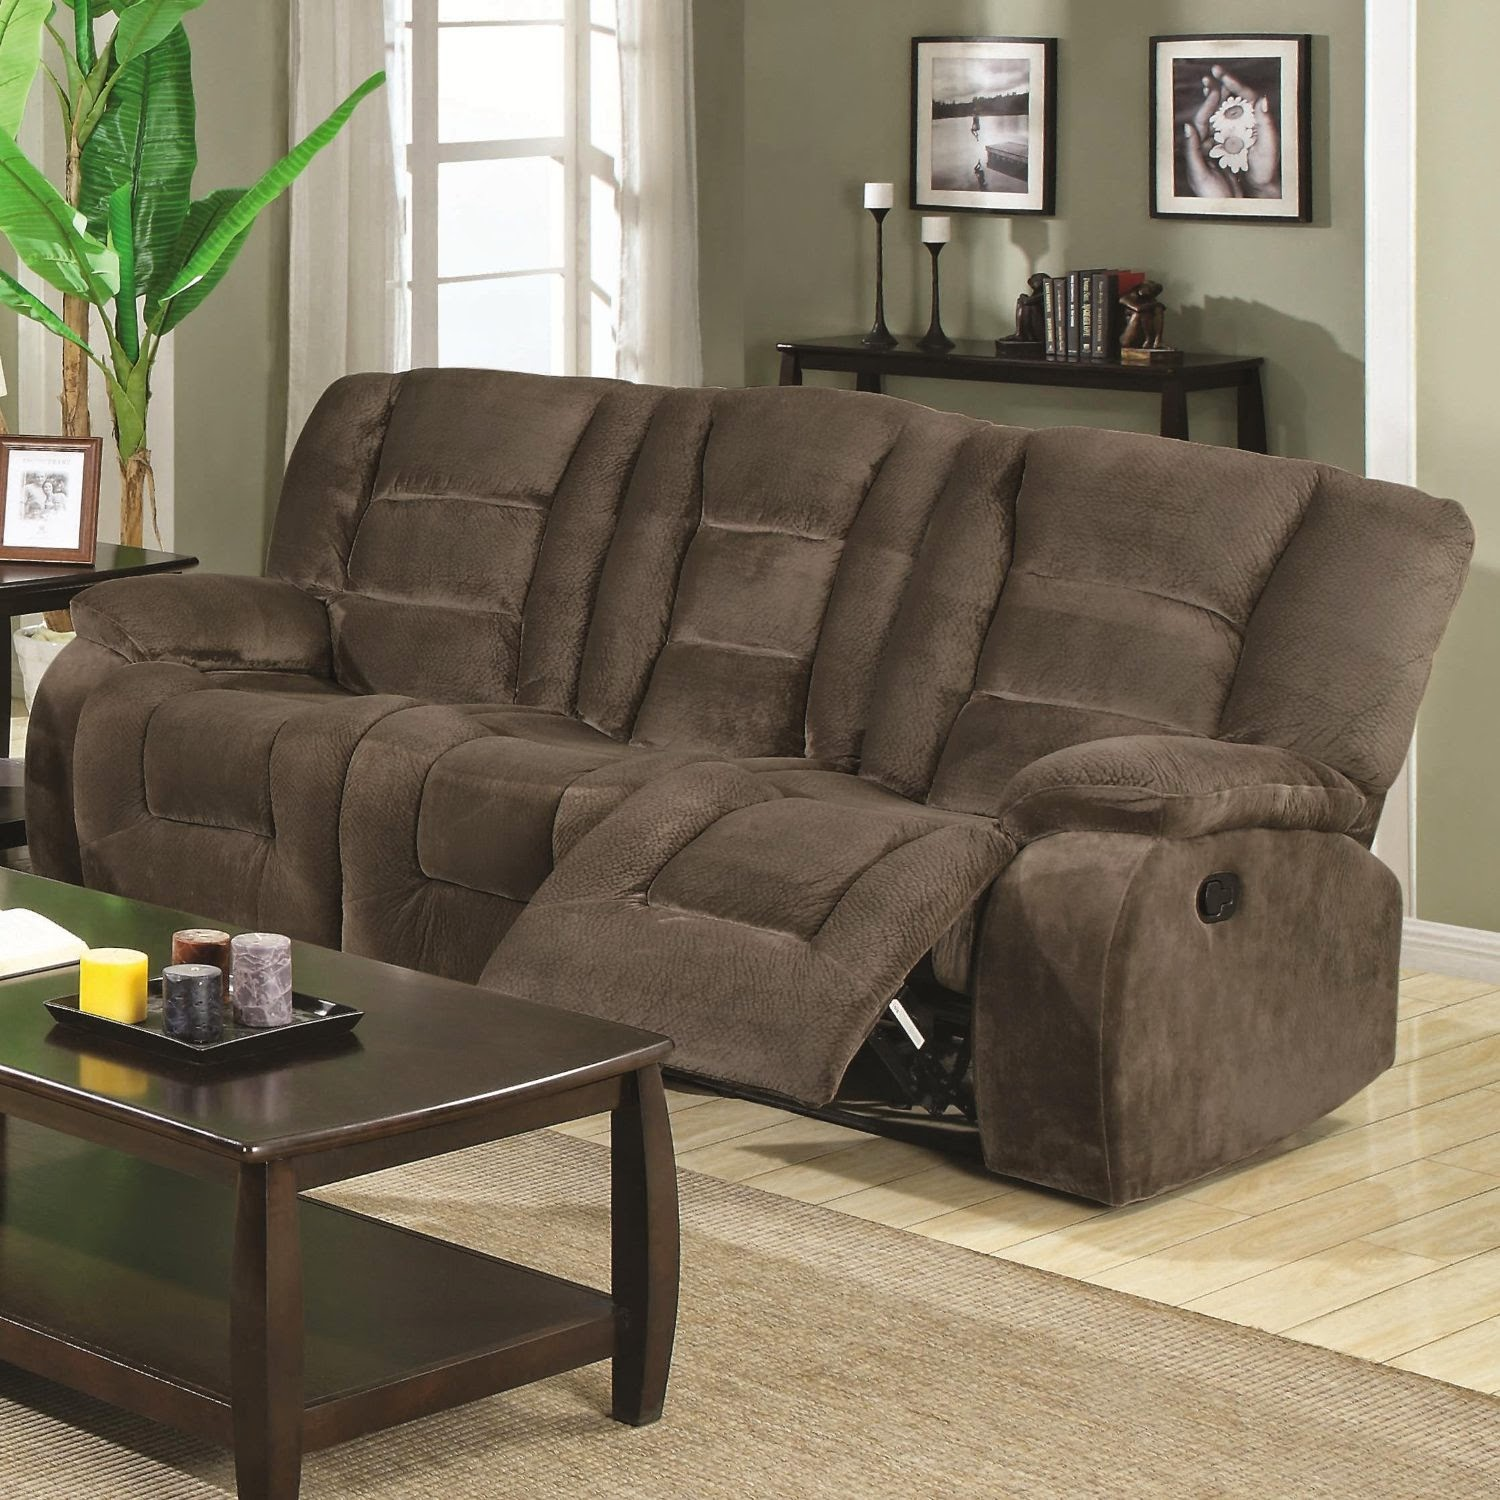 Cheap Recliner Sofas For Sale Black Leather Reclining: Cheap Reclining Sofas Sale: Fabric Recliner Sofas Sale